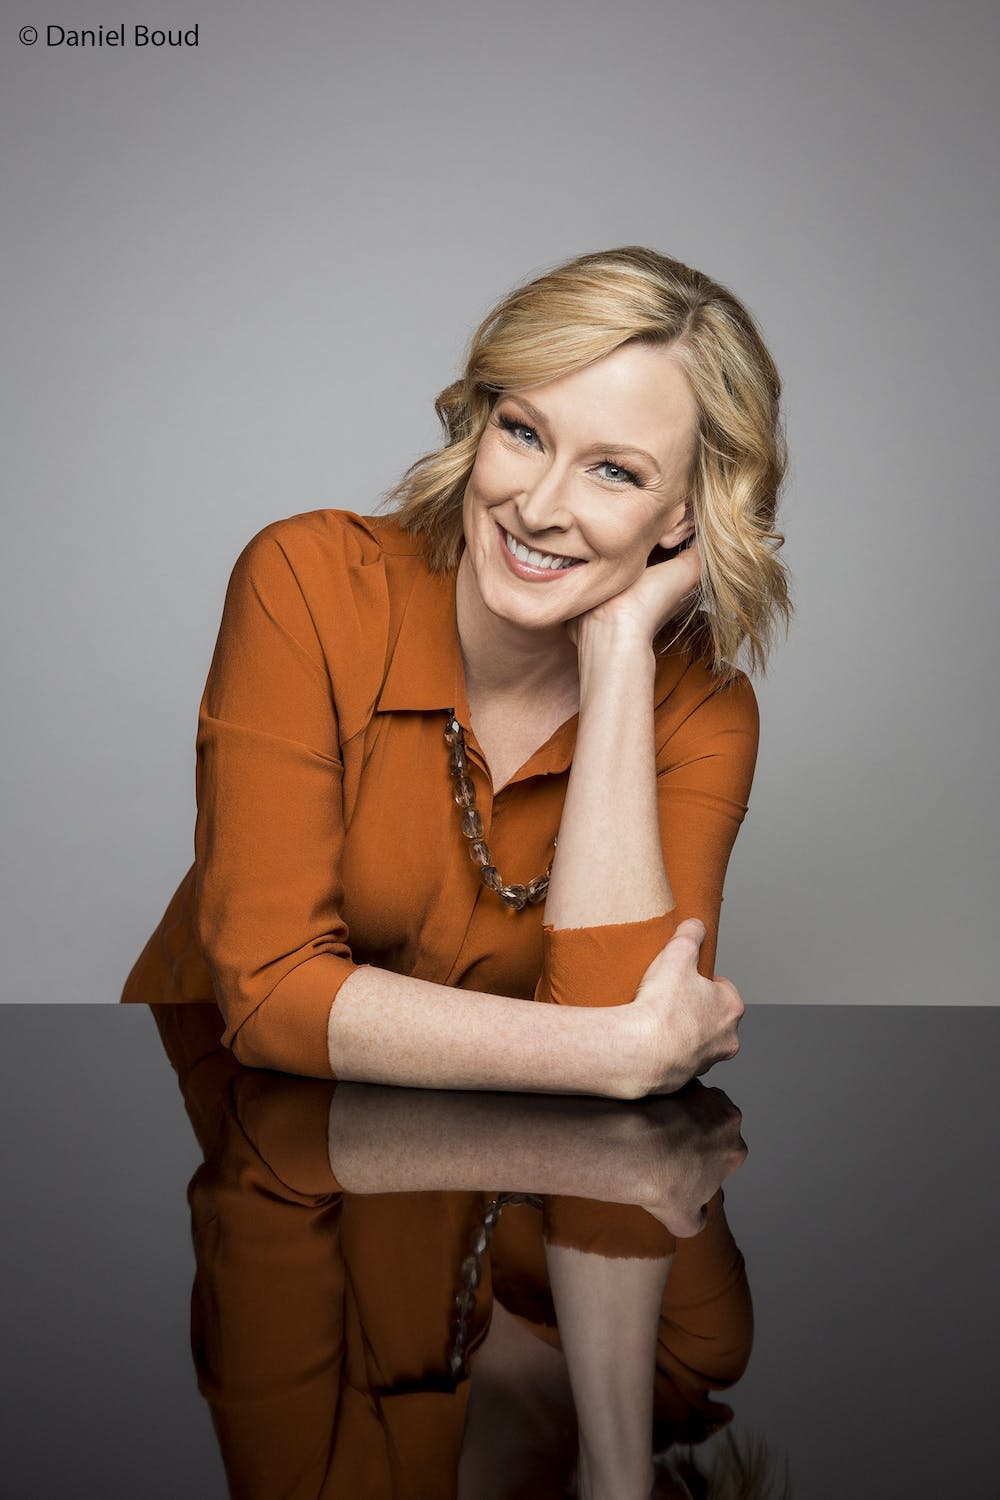 Inside the story: Leigh Sales, ordinary days and crafting